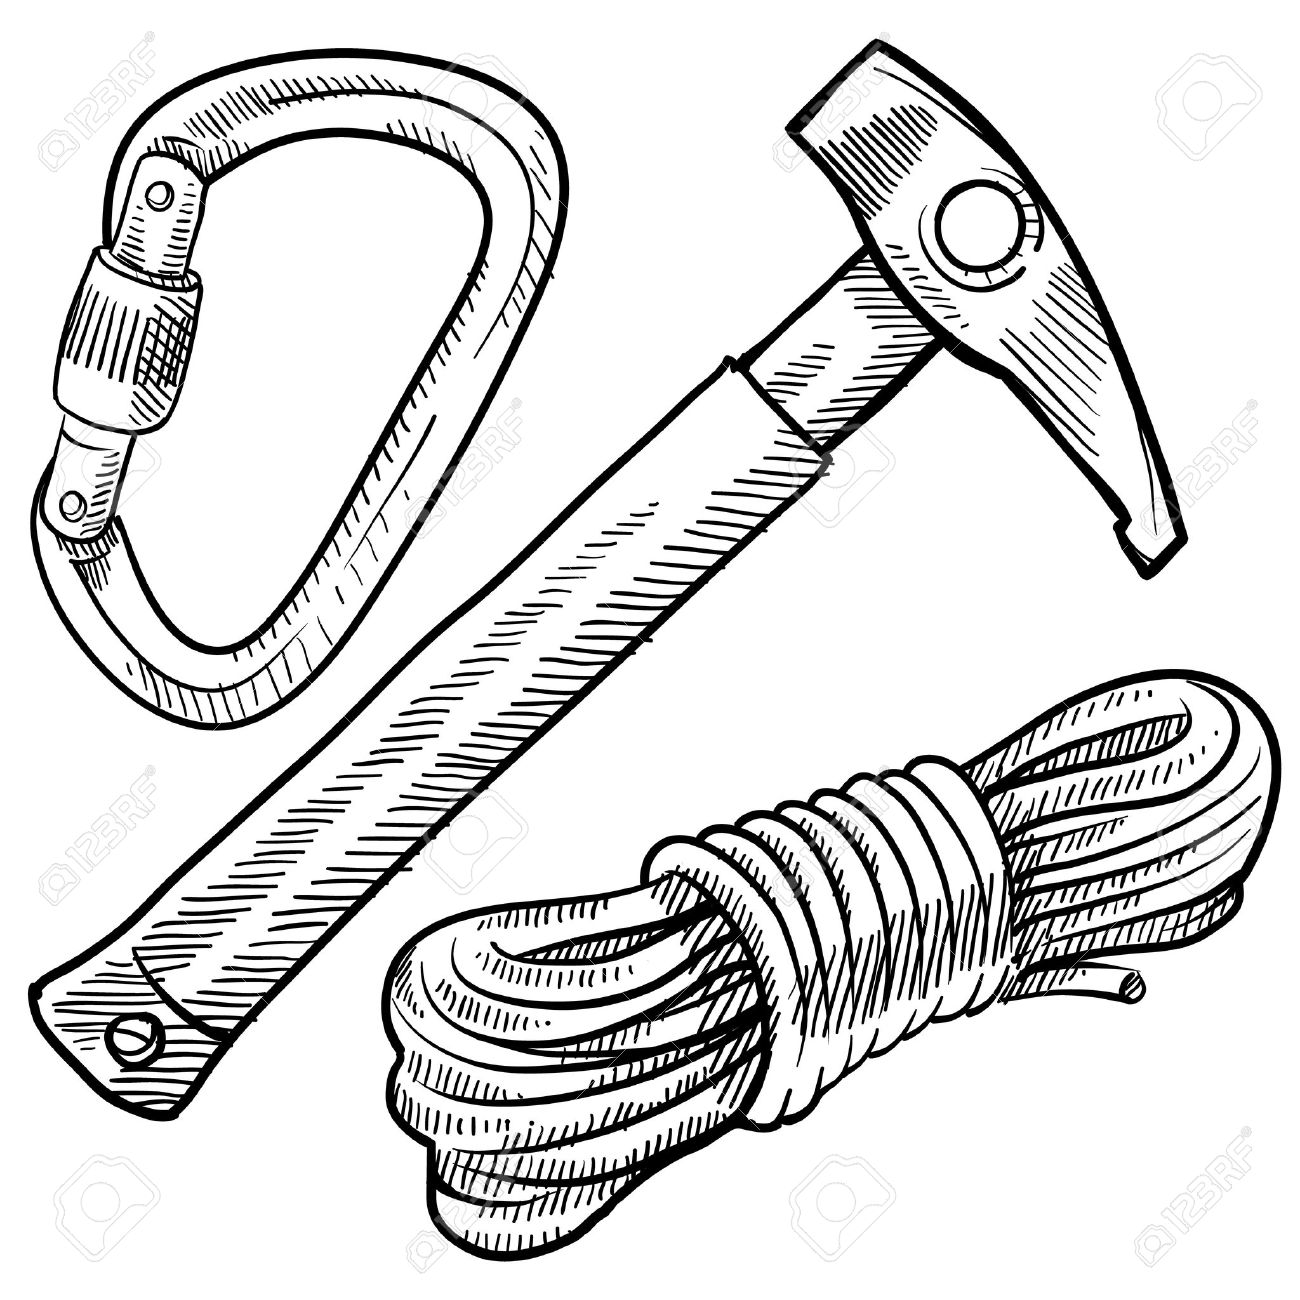 1300x1300 Doodle Style Mountain Climbing Gear Including Rope, Pick,